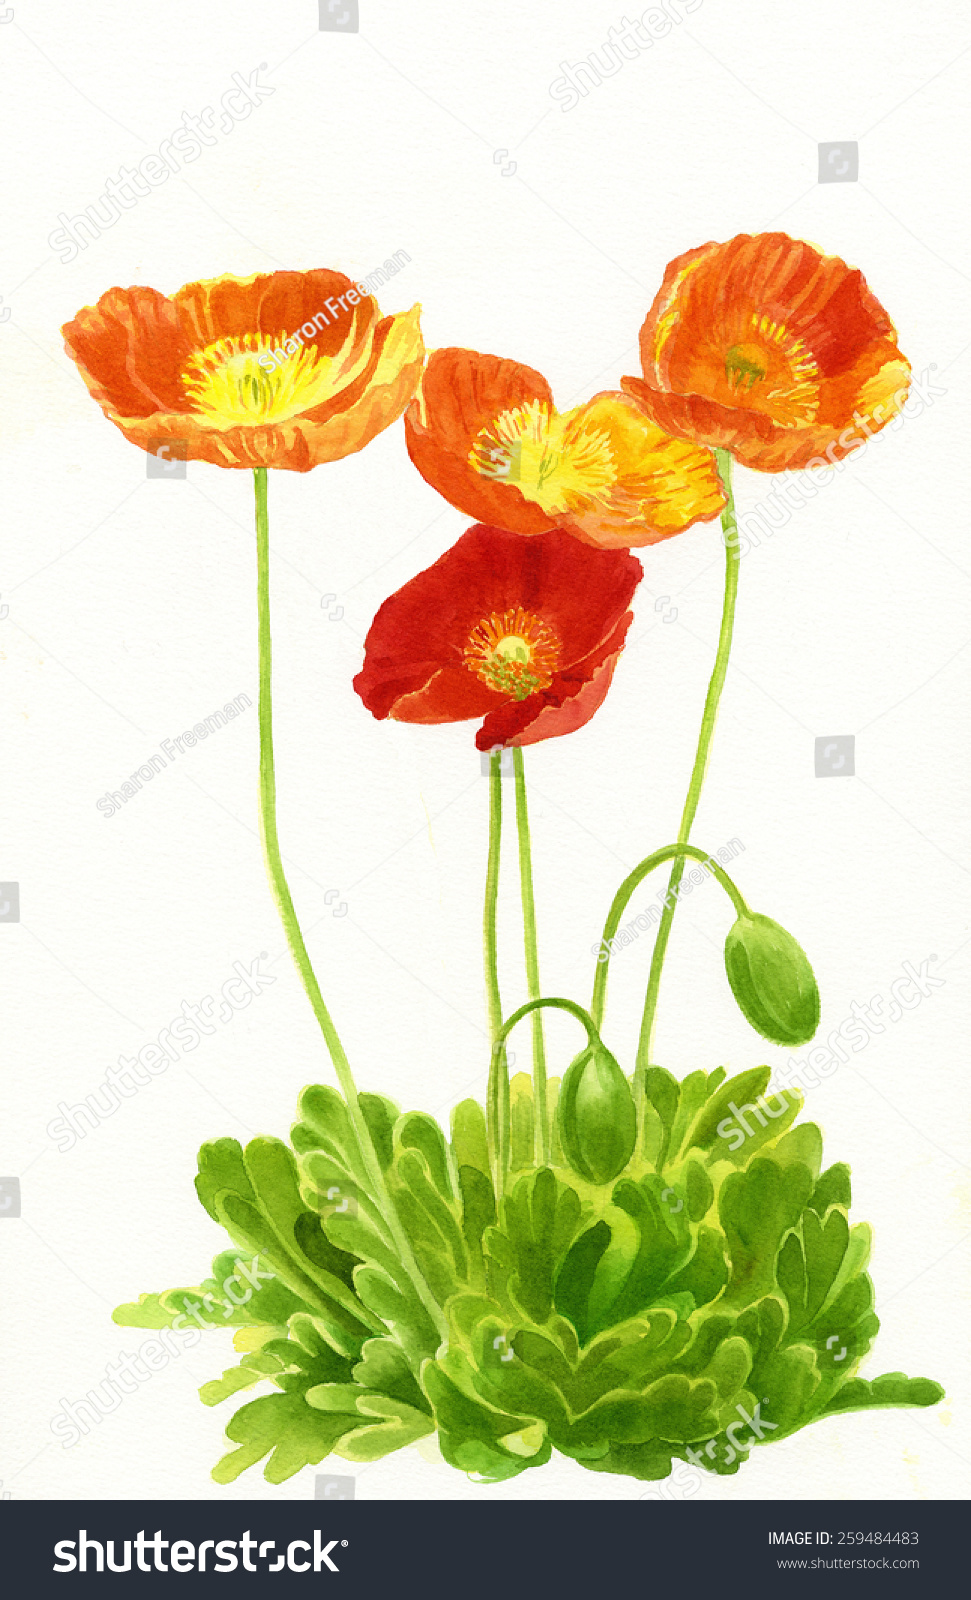 Orange Poppies Buds Watercolor Painting Illustration Stock